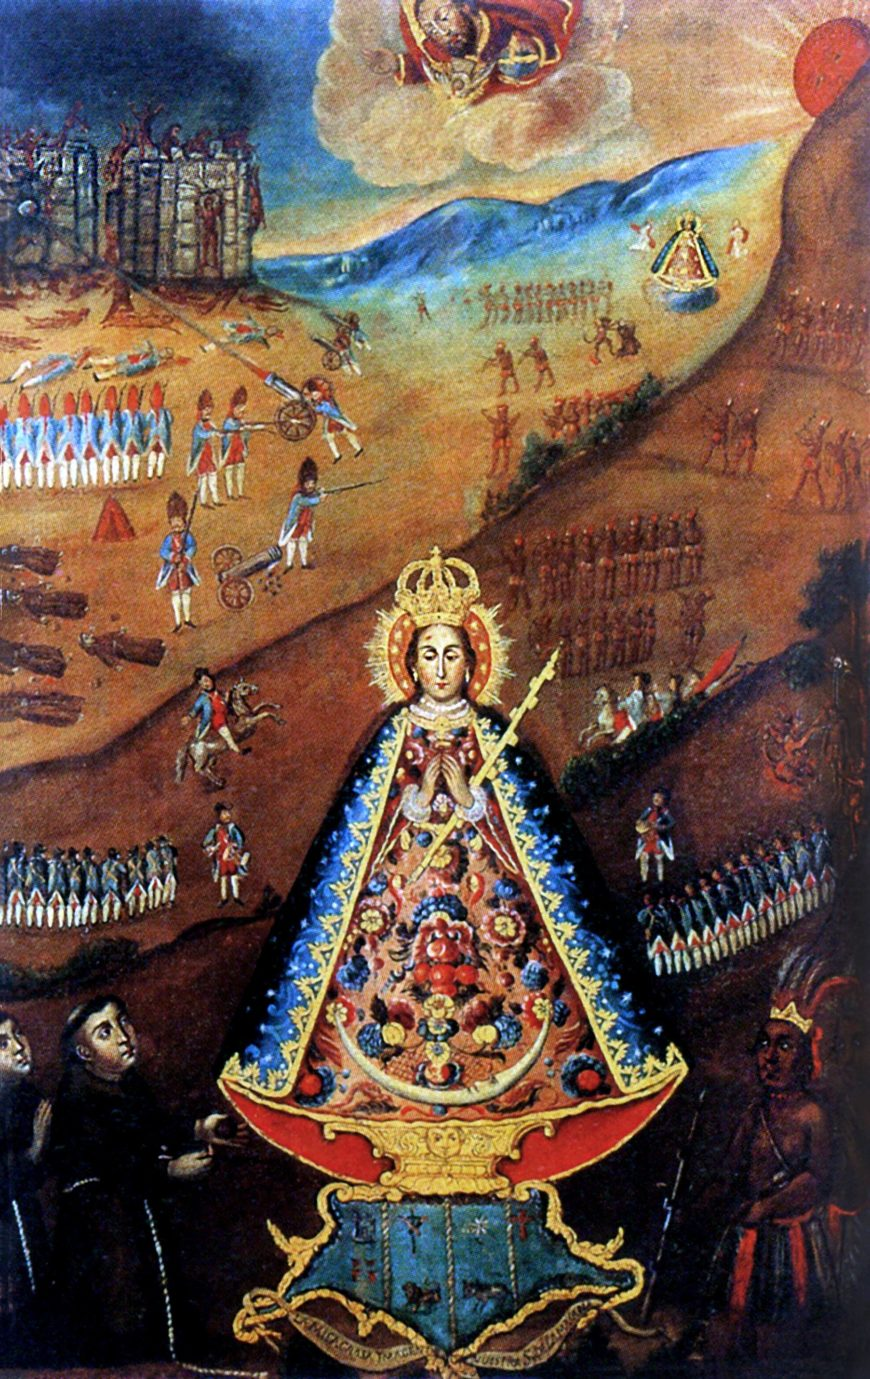 Unknown artist, The Virgin of the Macana, second half of the 18th century, oil on canvas (private collection)